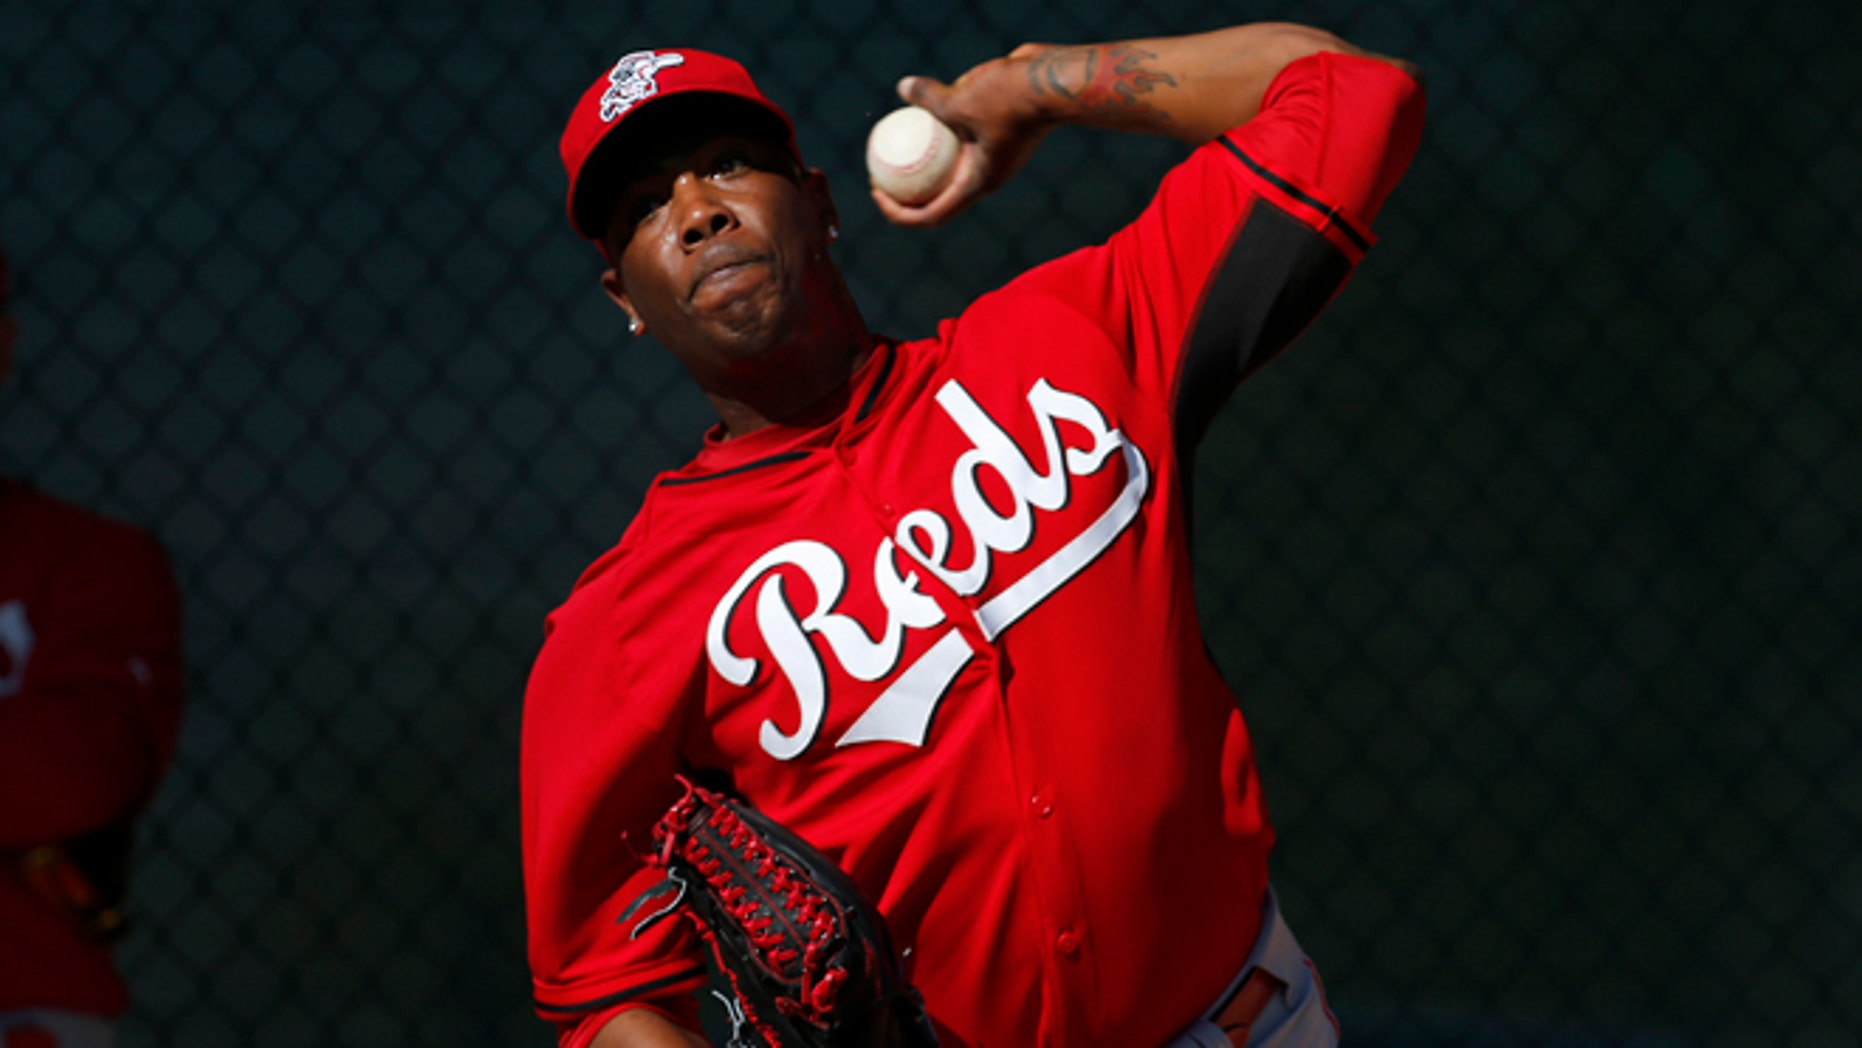 FILE - In this Feb. 15, 2014, file photo, Cincinnati Reds relief pitcher Aroldis Chapman throws during spring training baseball practice in Goodyear, Ariz. Chapman, with two black eyes, has returned to the Reds' clubhouse four days after being hit in the face by a line drive. The 26-year old left-hander had surgery at Banner Good Samaritan Medical Center, Thursday, March 20, 2014, to repair a broken bone above his left eye. (AP Photo/Paul Sancya, File)